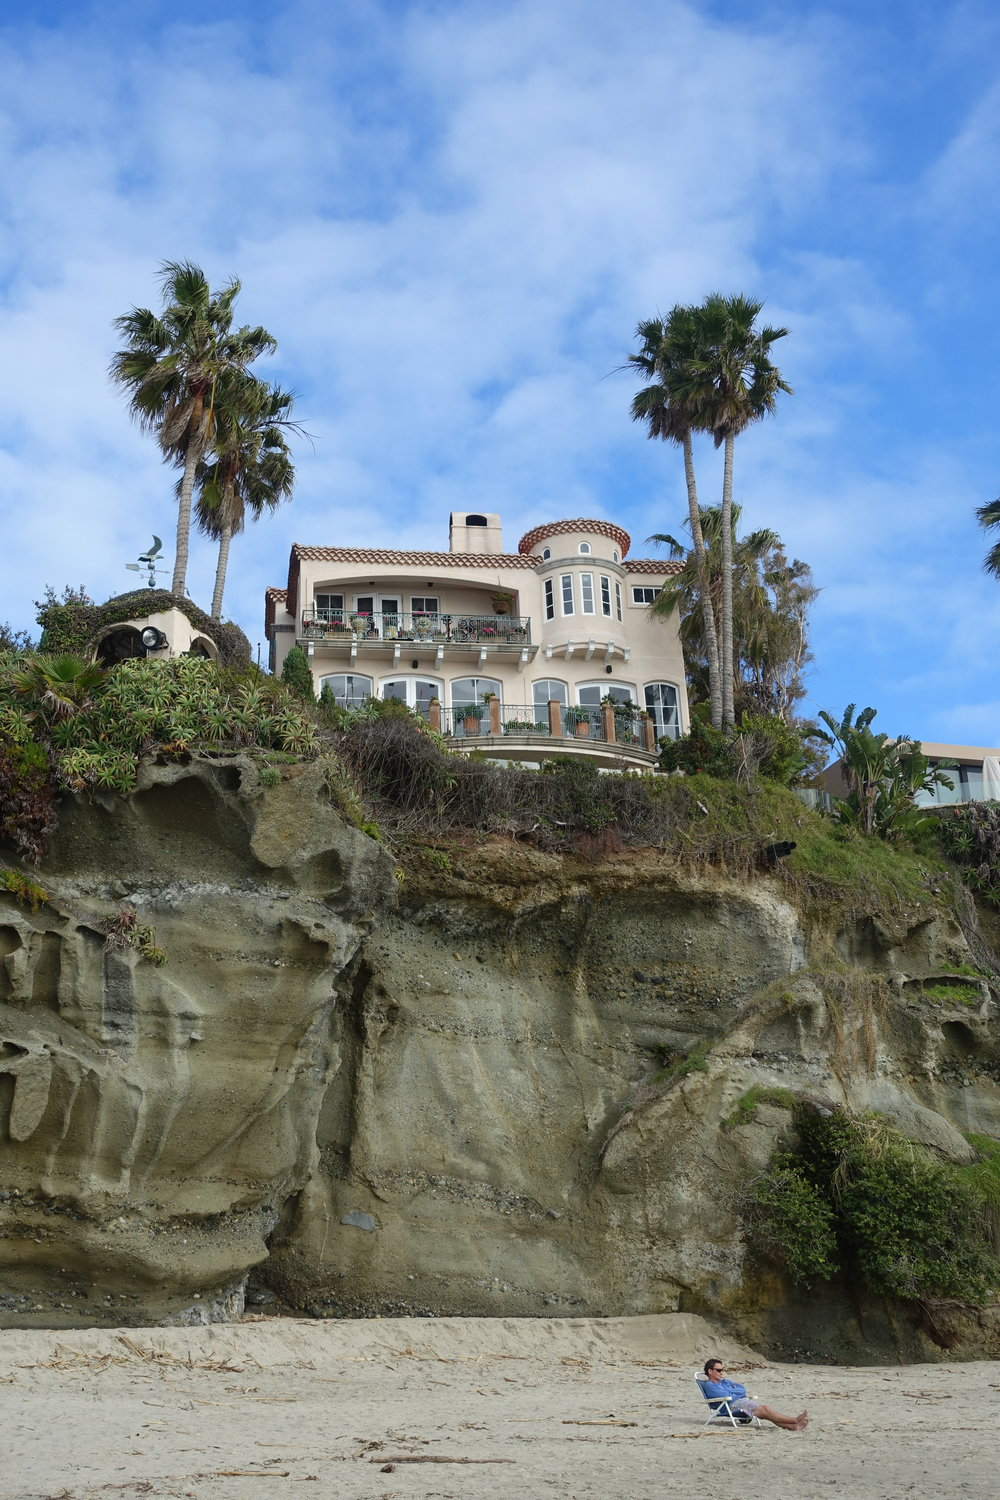 Laguna Beach, where the rich come to be idle in the lap of California coastal luxury.